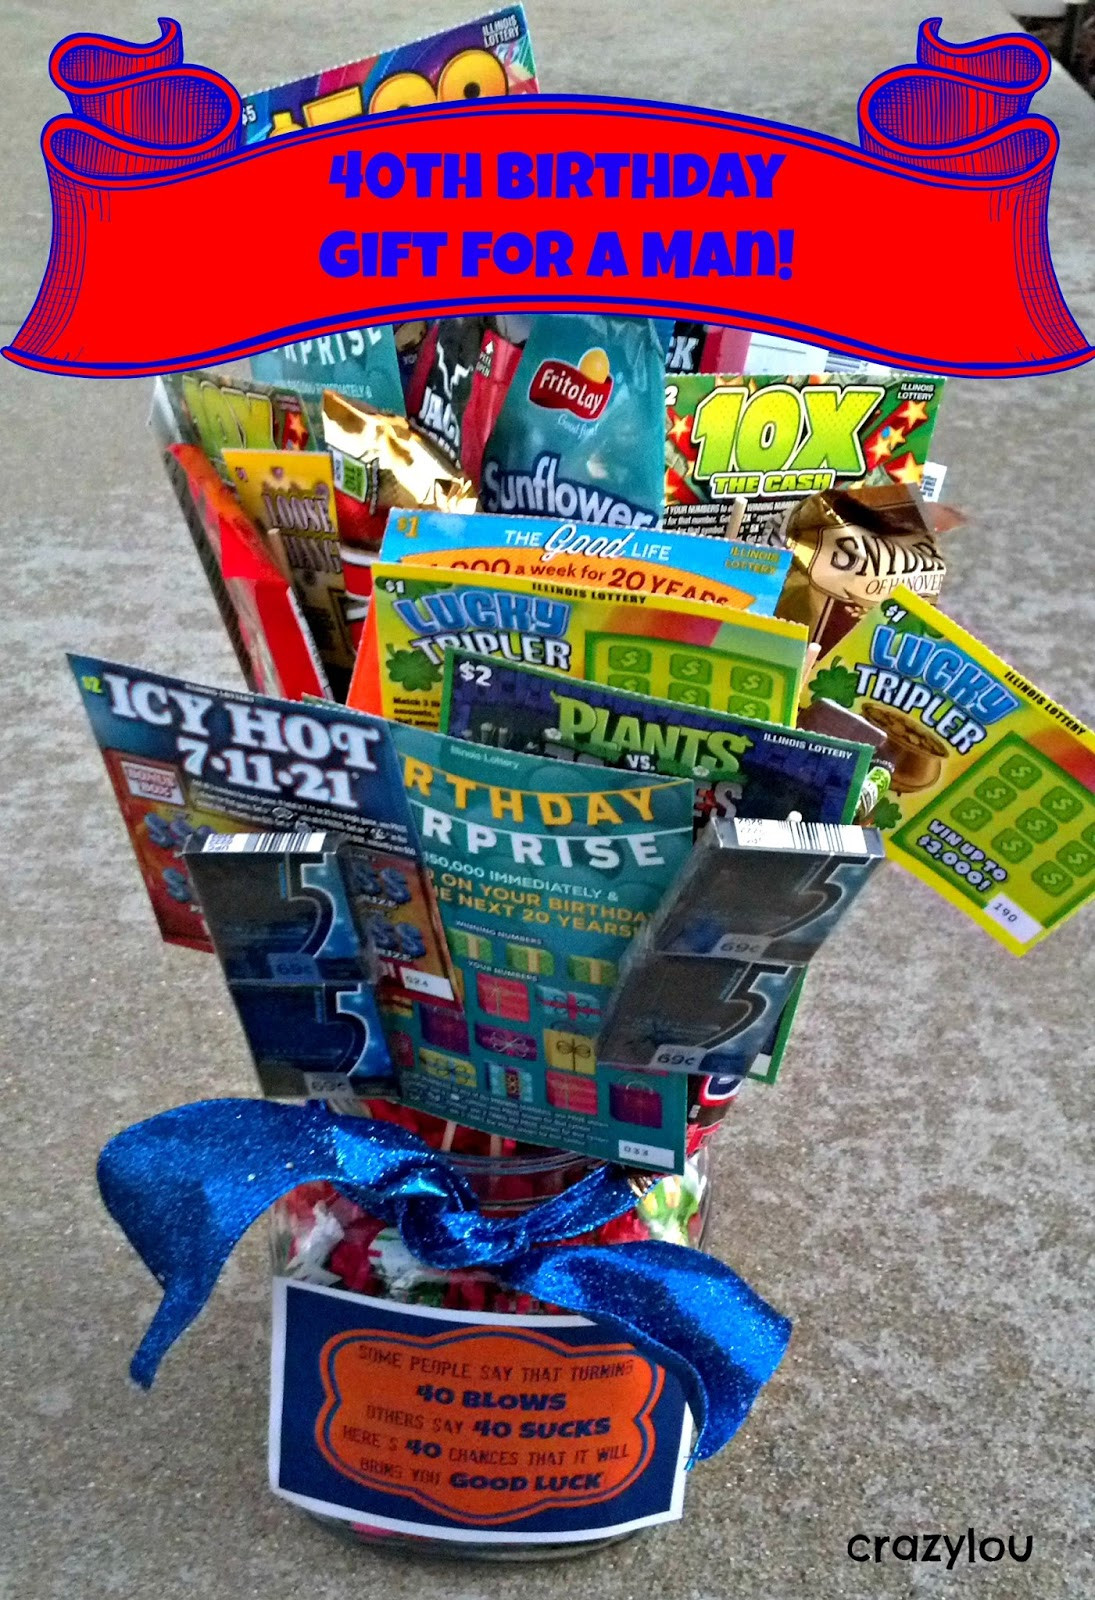 Best ideas about 40Th Birthday Gift Ideas For Men . Save or Pin crazylou 40th Birthday Gifts for Men Now.